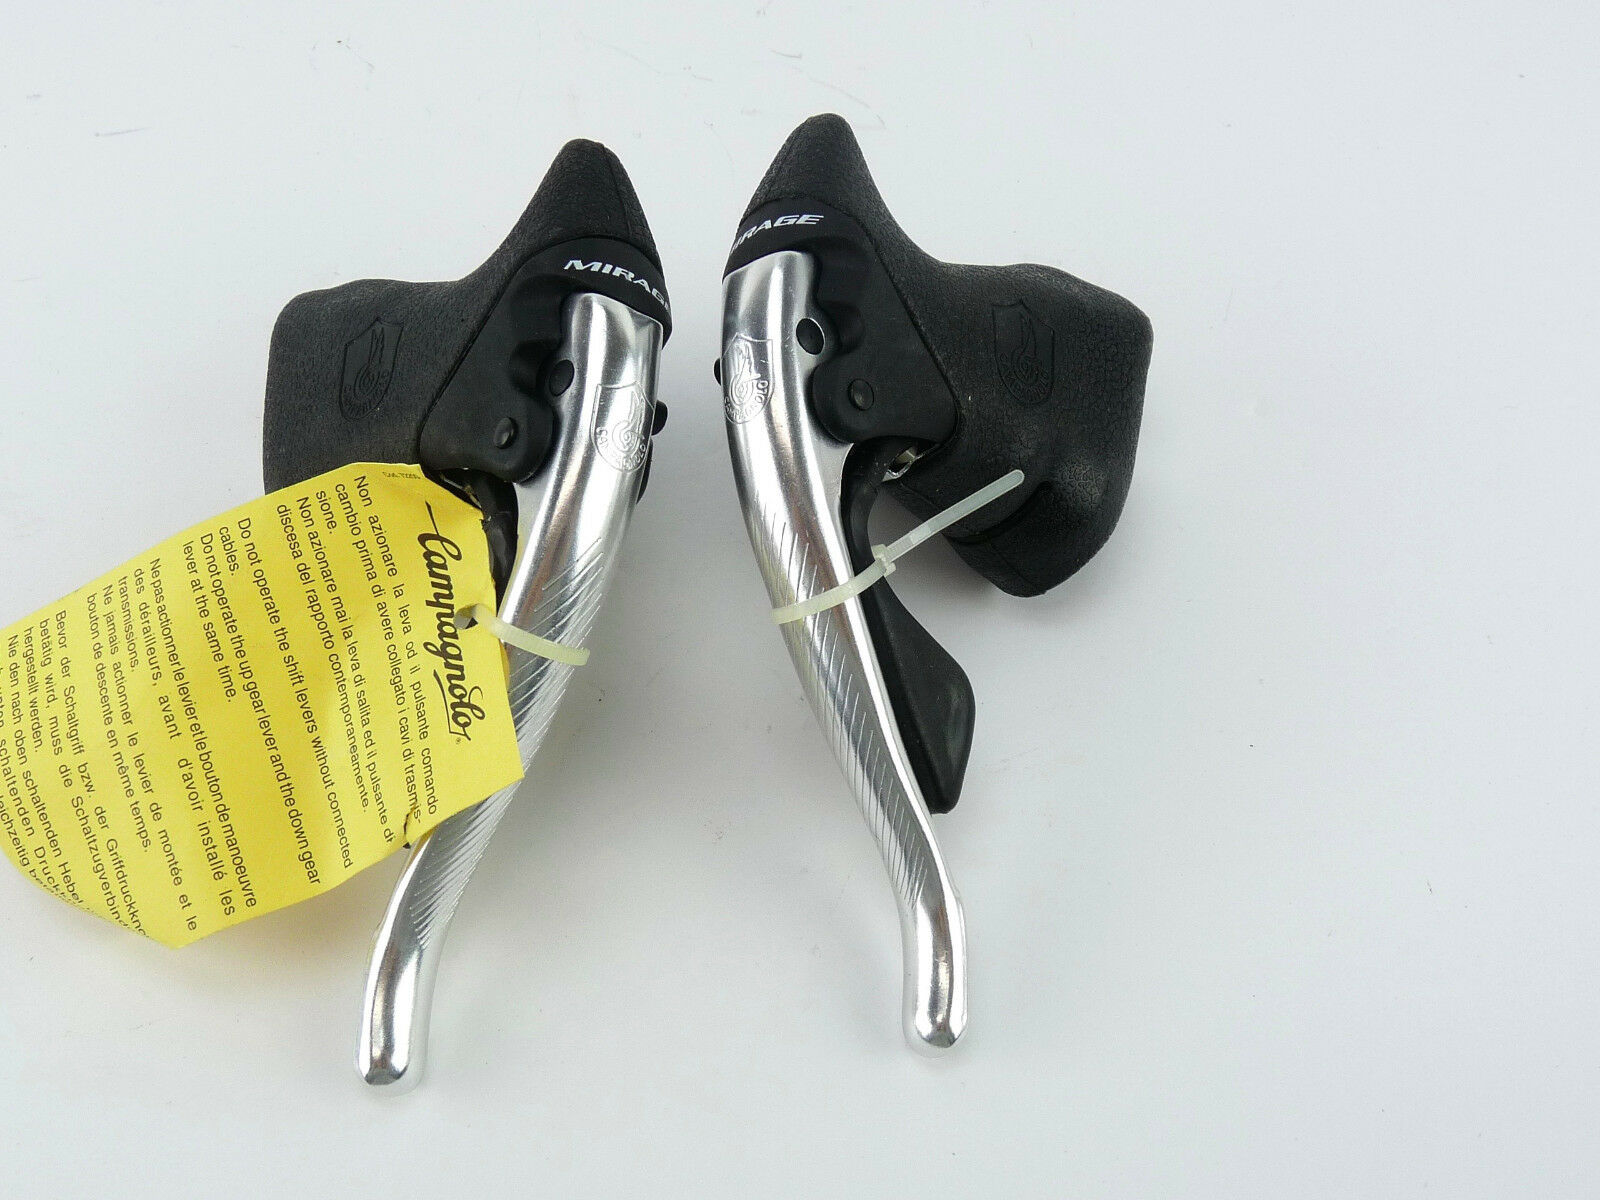 Campagnolo Mirage  8 Speed shifters ErgoPower brake Lever Set Alloy NOS  factory direct and quick delivery